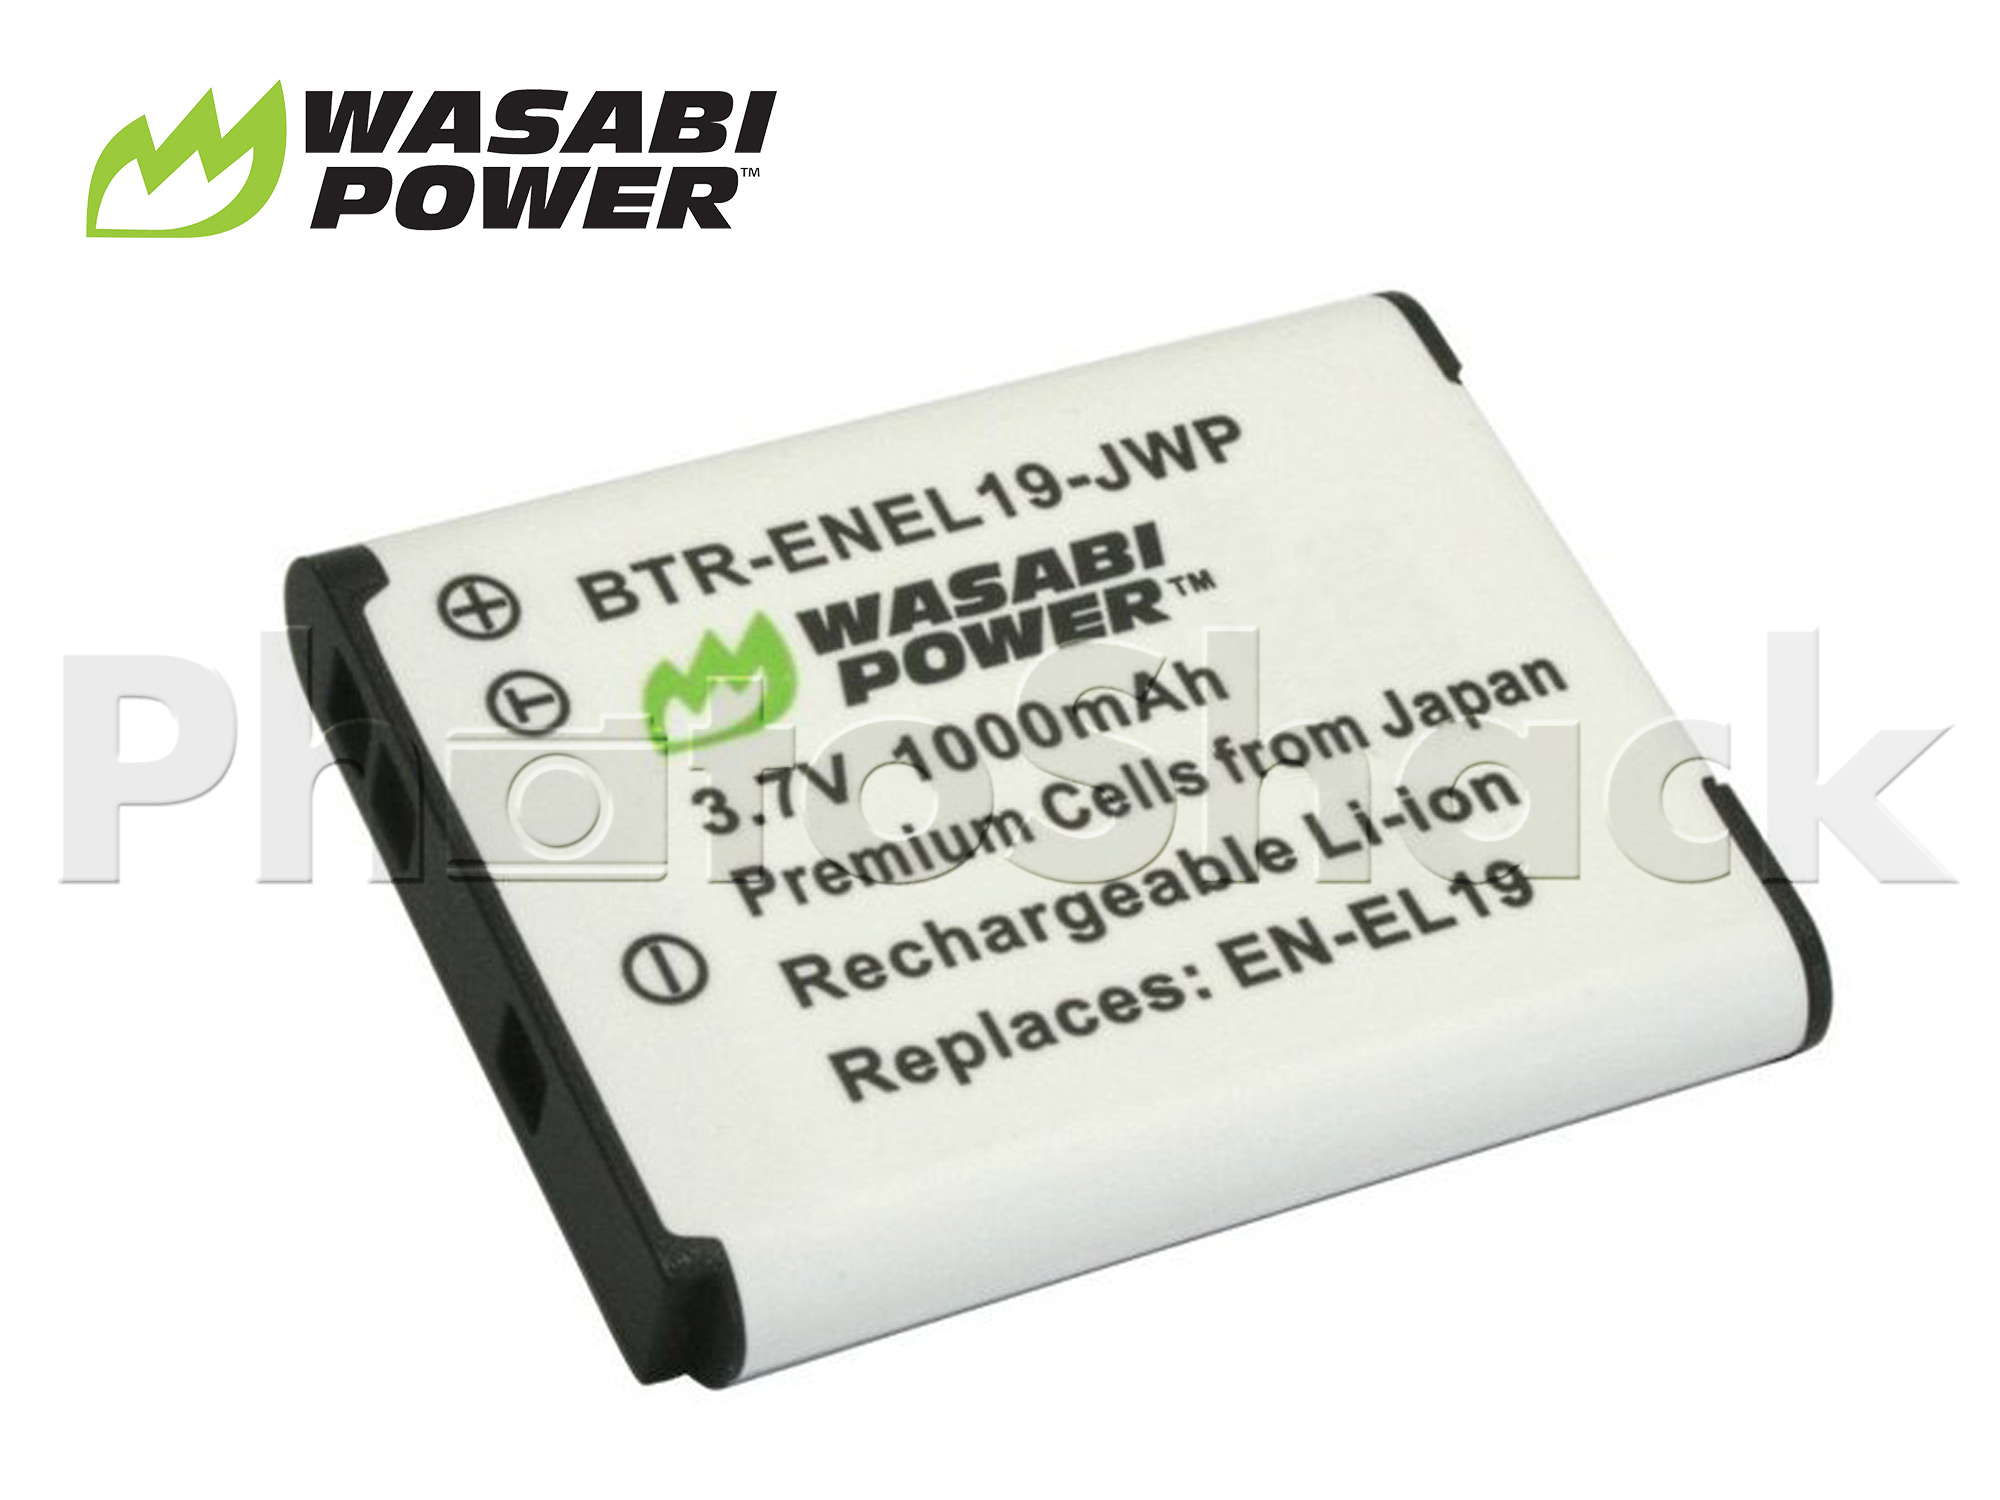 ENEL19 Battery for Nikon - Wasabi Power